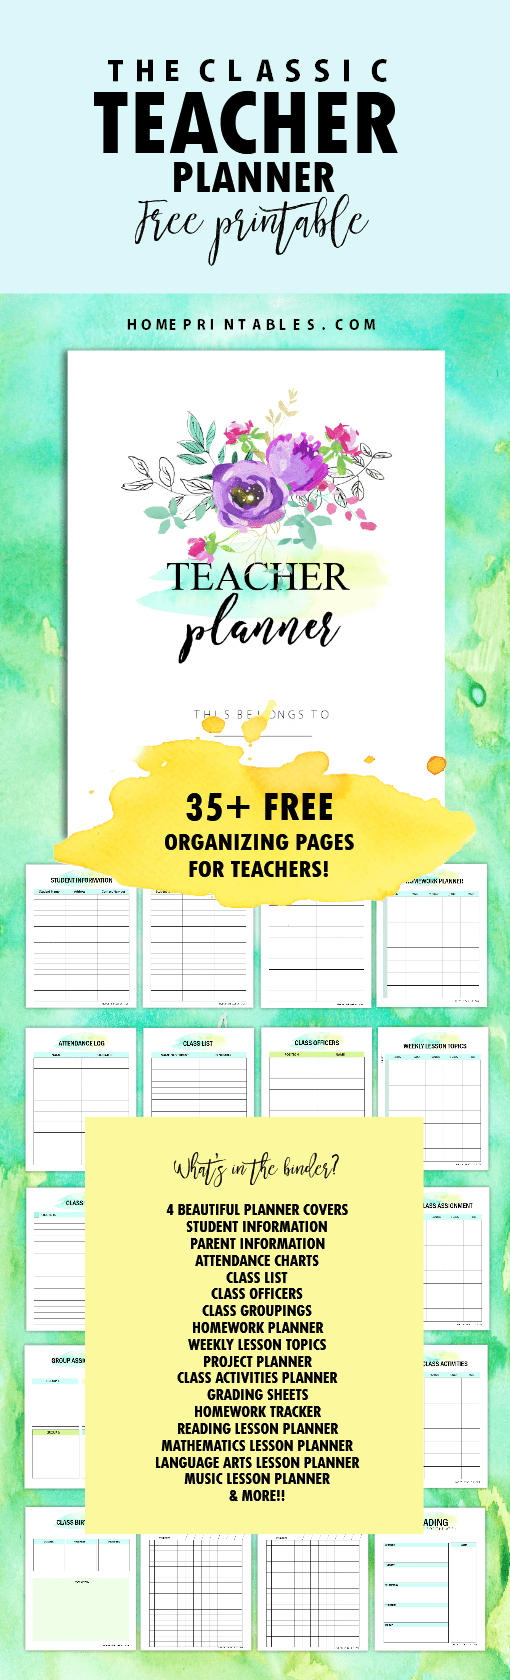 graphic about Free Printable Organizing Sheets referred to as Totally free Trainer Planner Printables: 35 Preparing Sheets